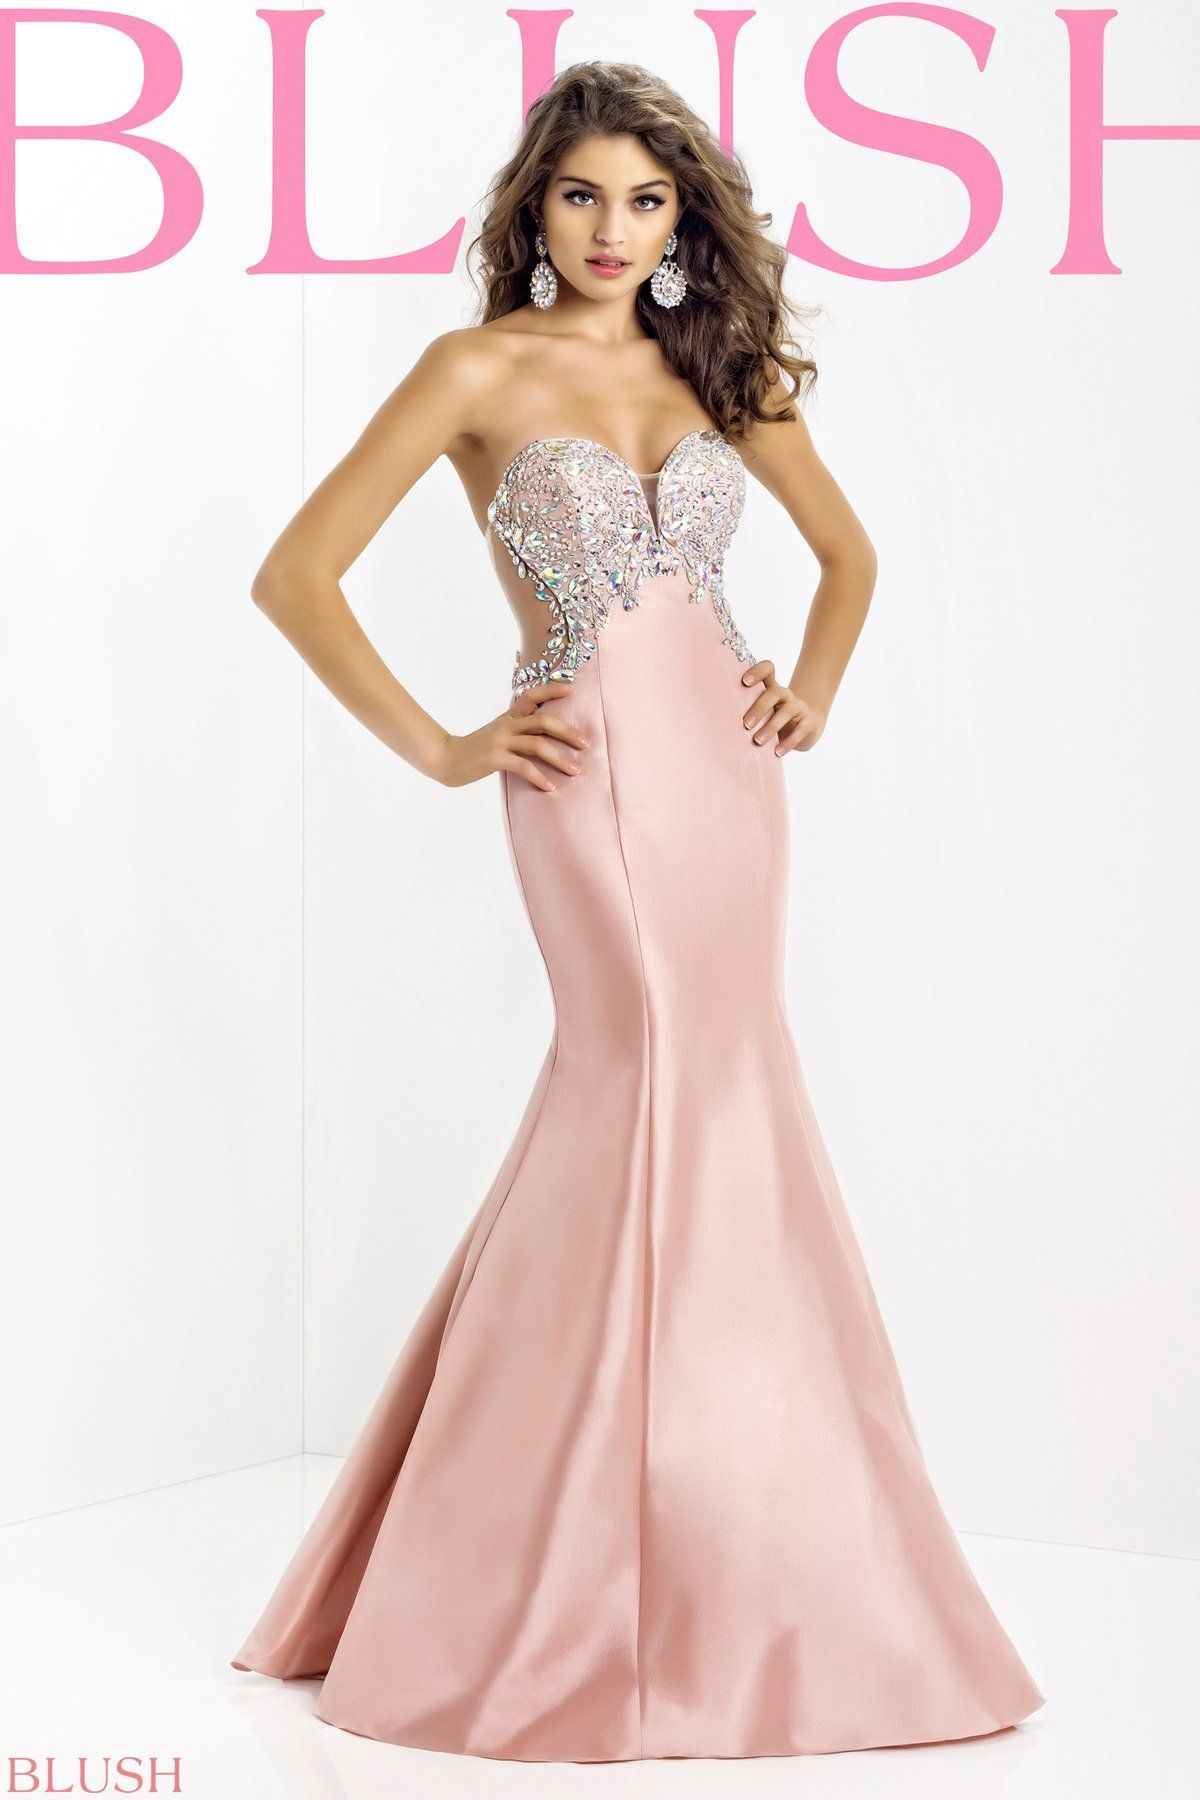 Blush prom dress! 2014 season www.facebook.com/thebridalconnection ...